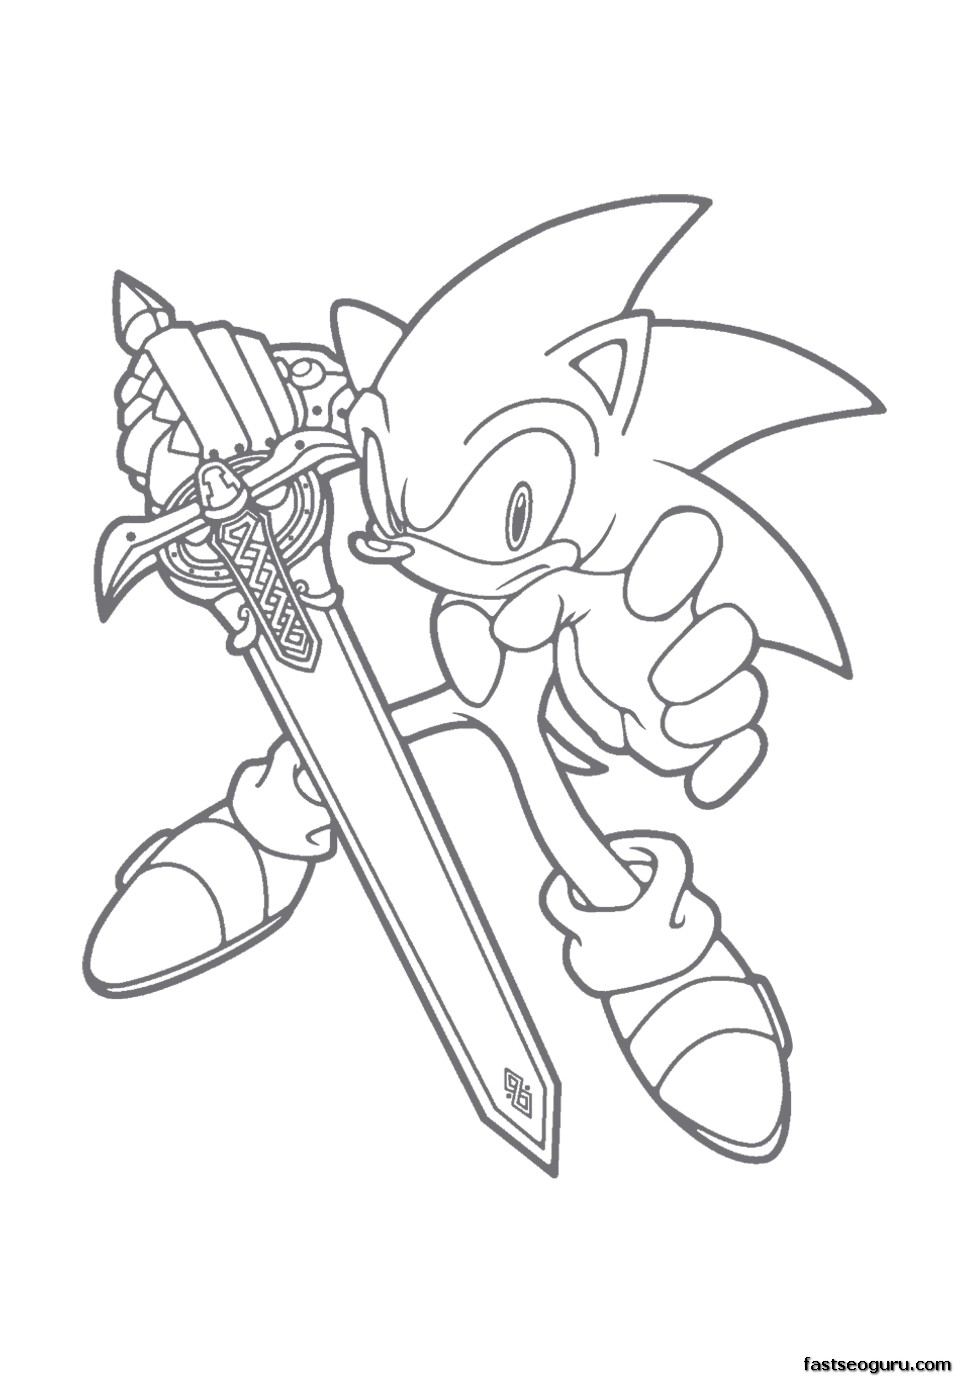 Printable Cartoon Sonic The Hedgehog Coloring Pages